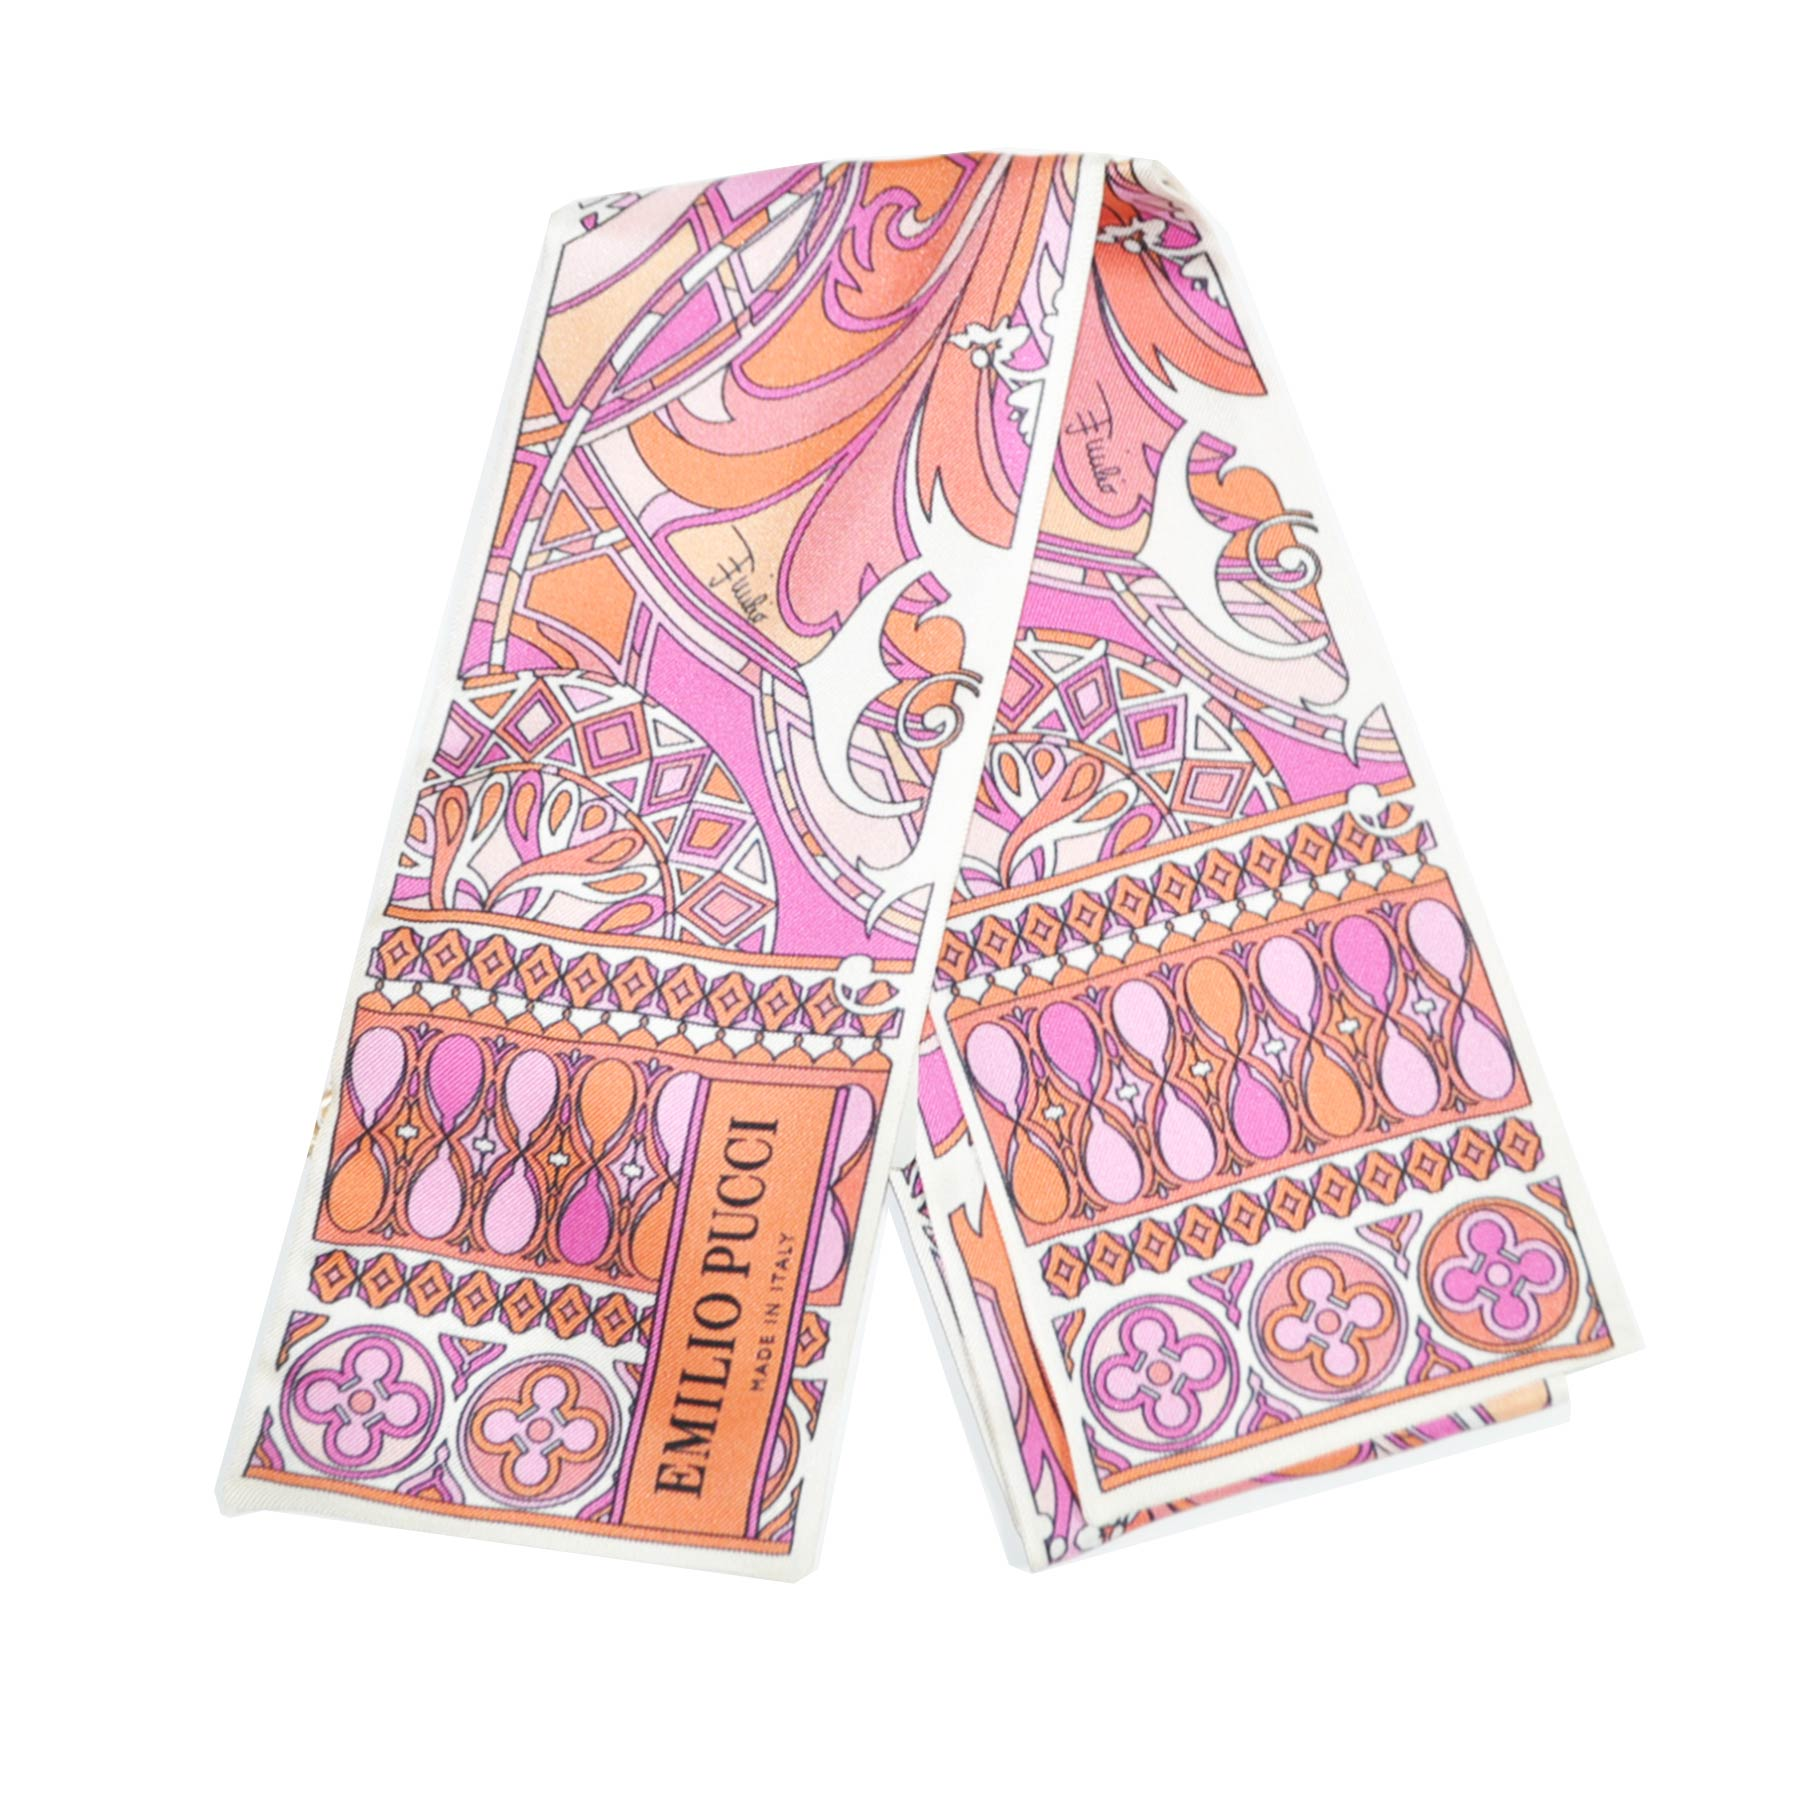 Pucci Small Scarf Pink Signature Design Headband